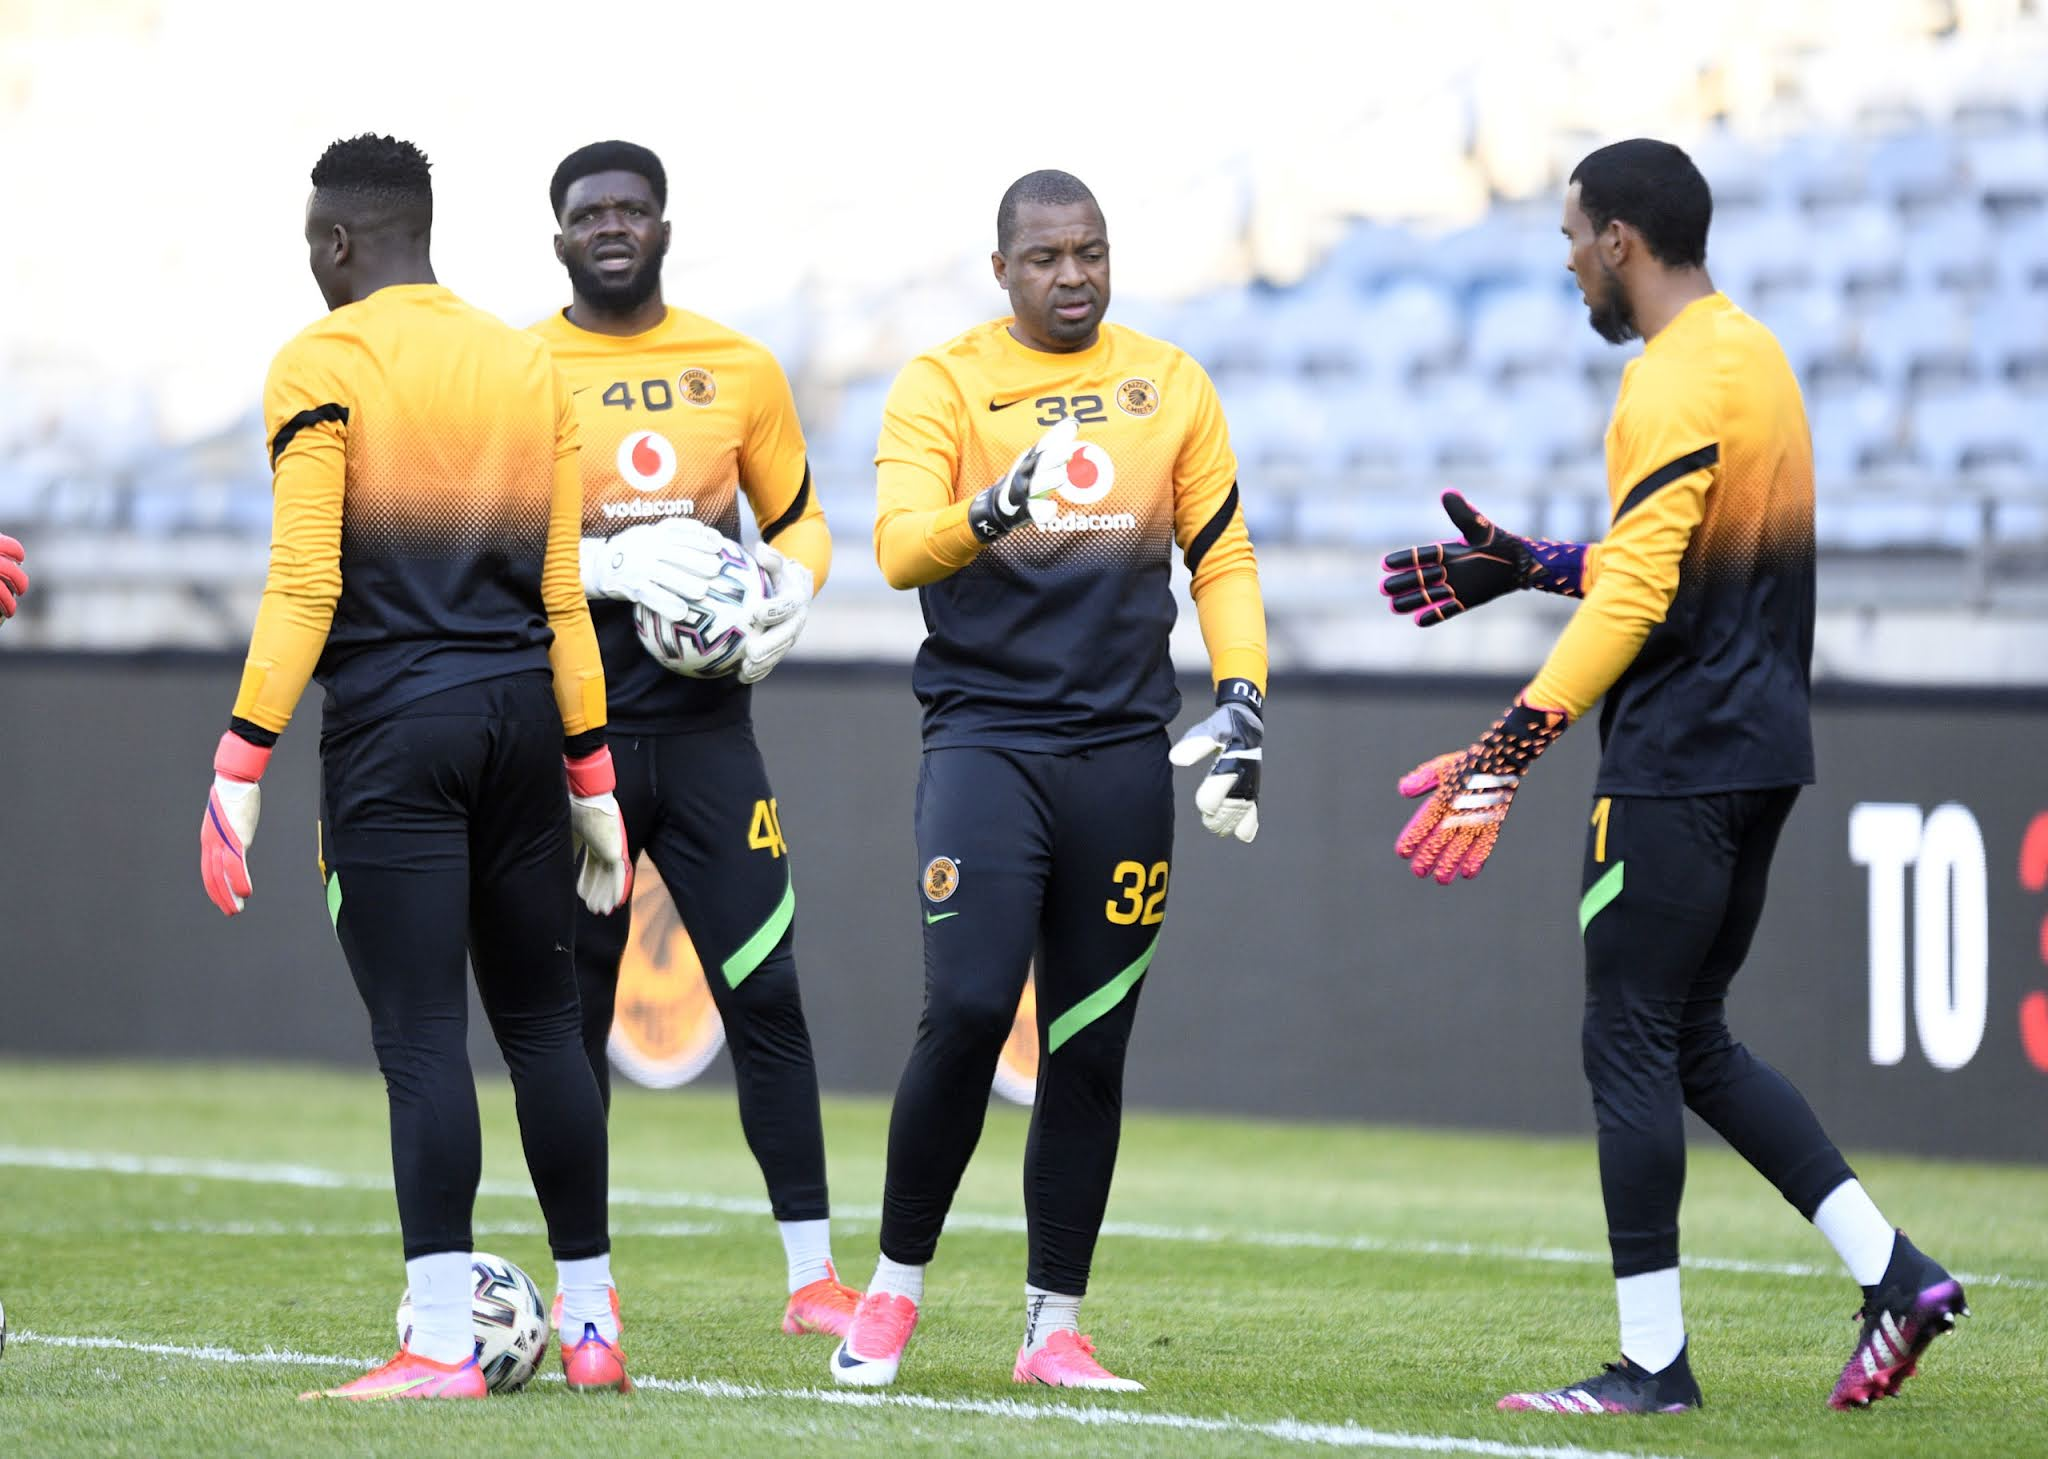 Chiefs' goalkeepers